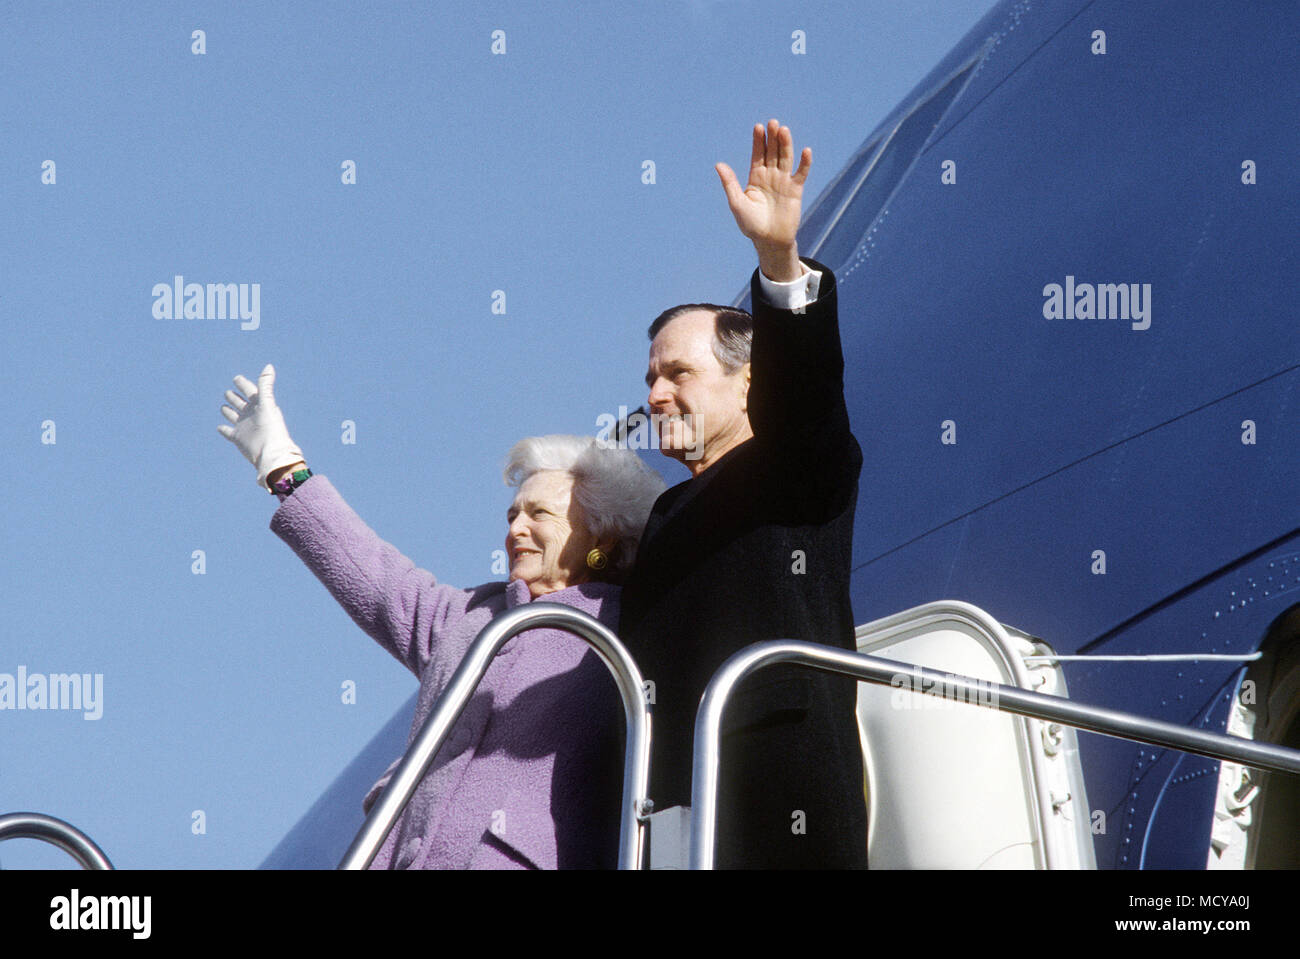 Inauguration a final farewell - former President and First Lady George and Barbara Bush give one final goodbye wave prior to boarding Air Force One.  Approximately 600 well wishes were present for the departure at Andrew Air Force Base, Maryland on Inauguration day. - Stock Image